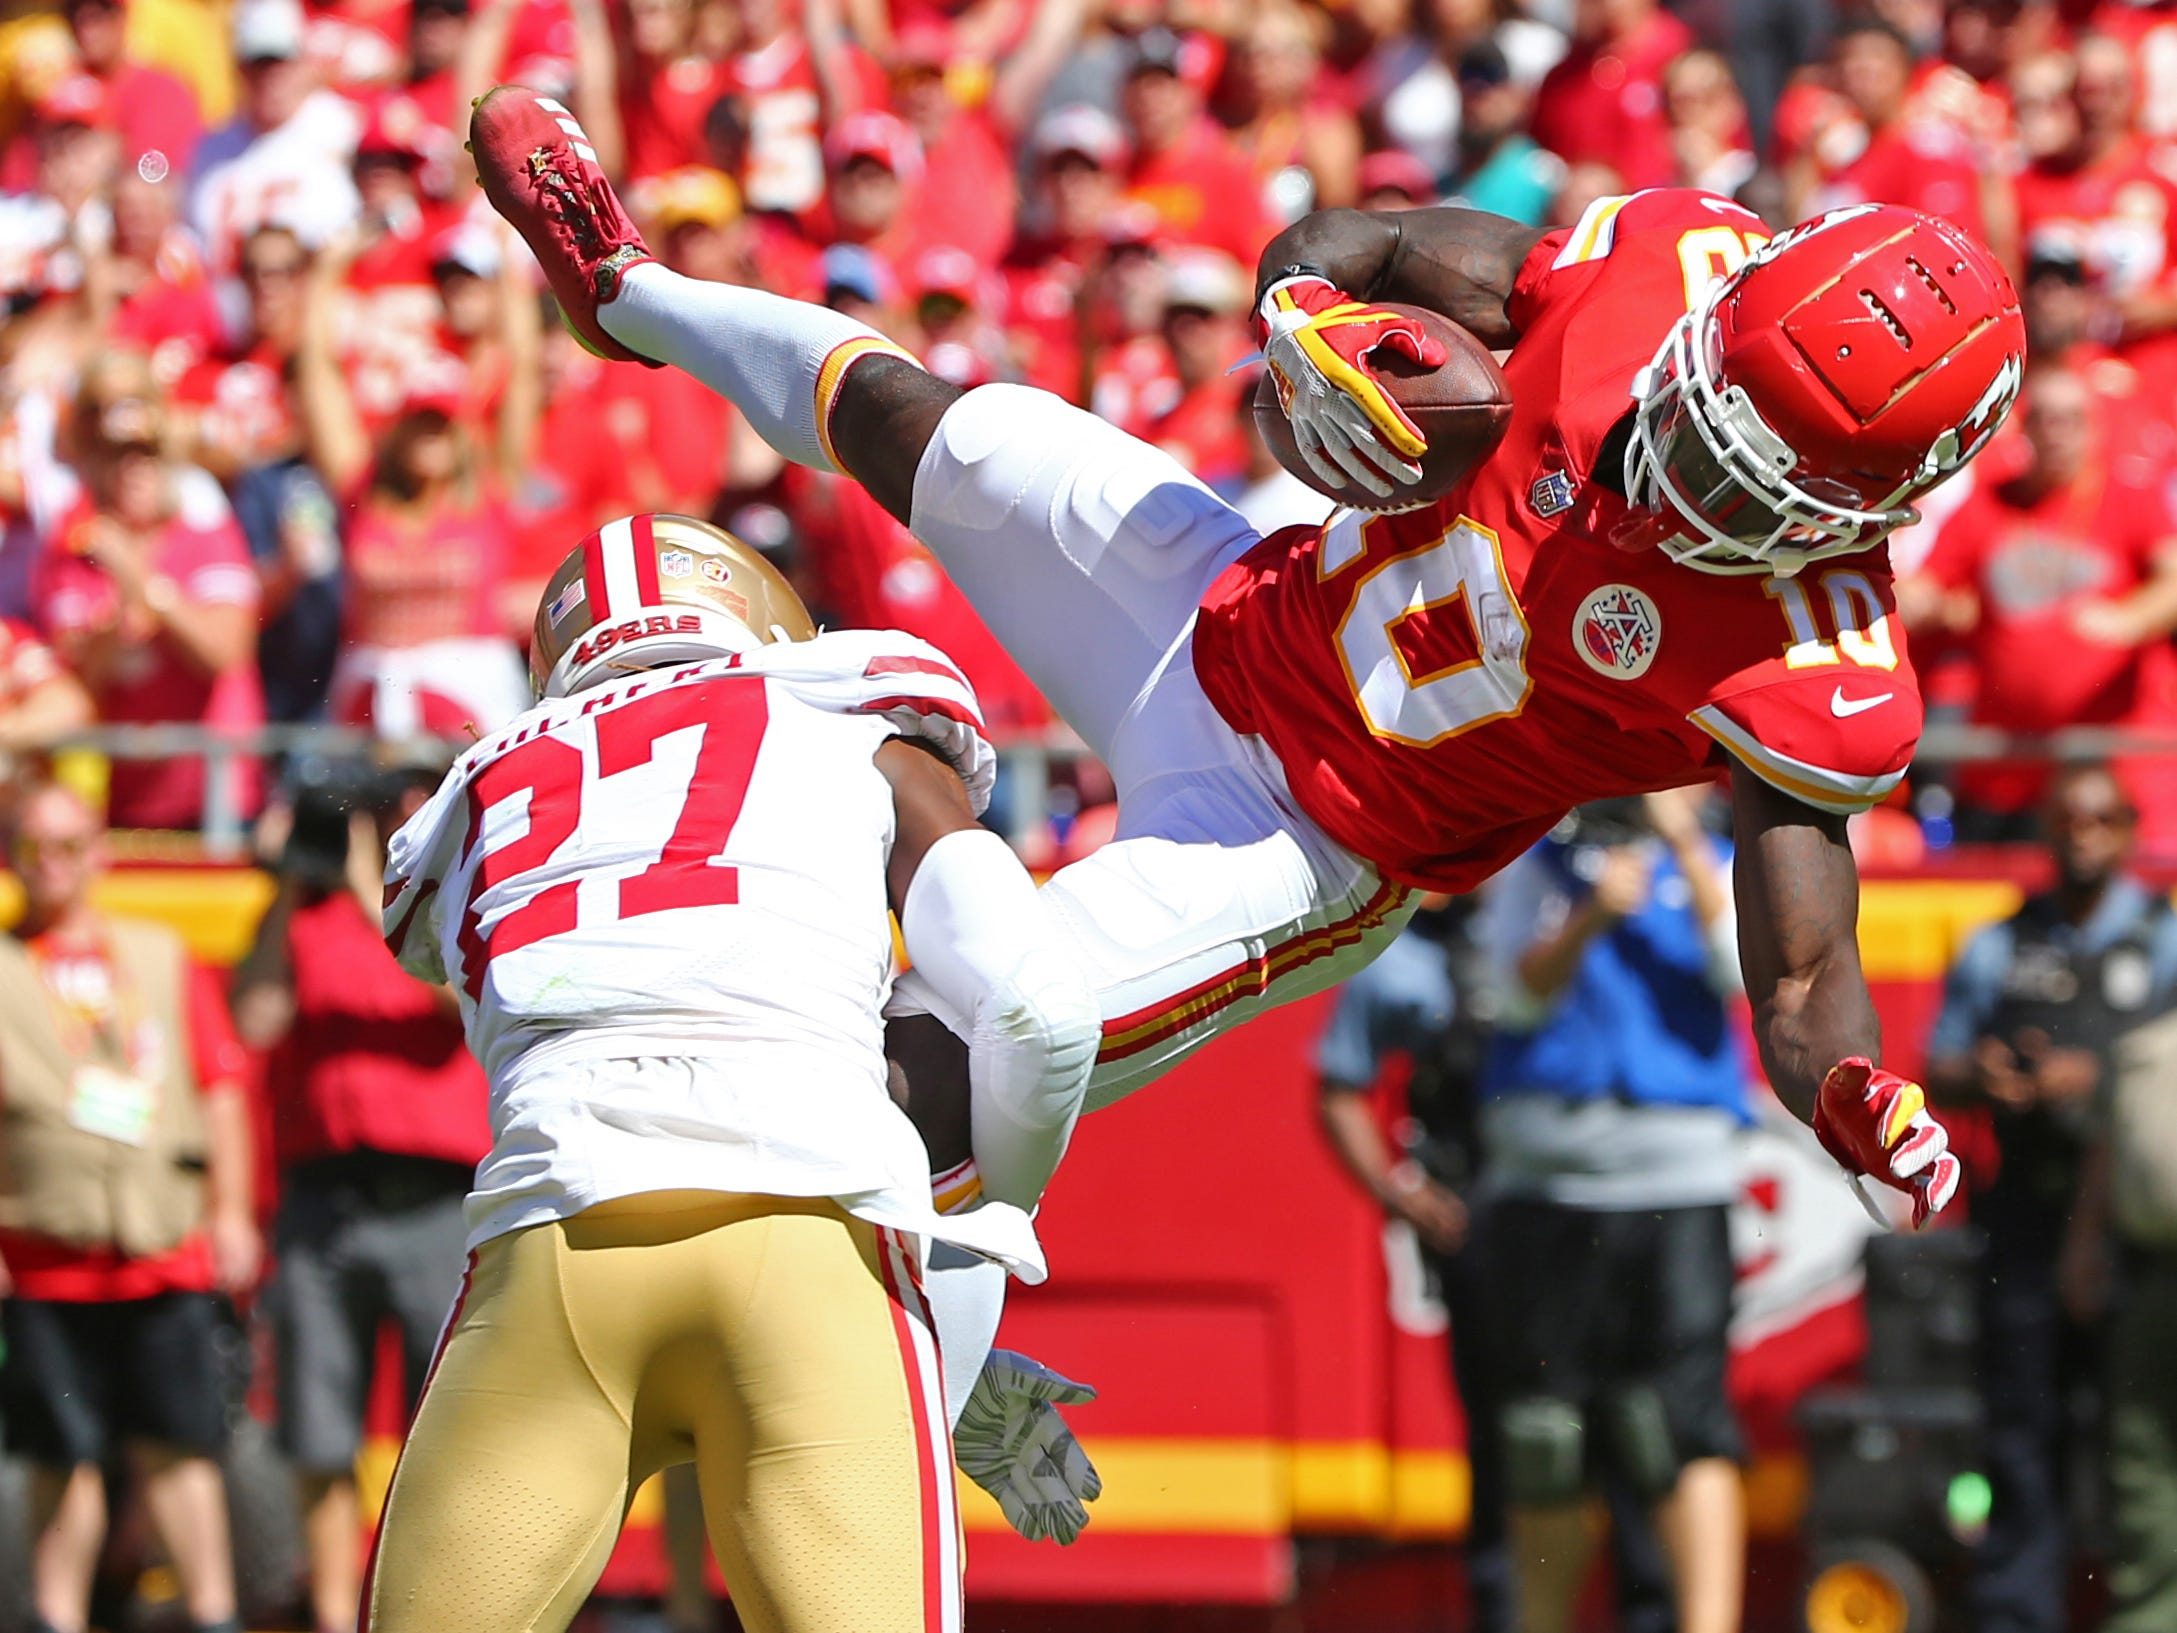 Kansas City Chiefs wide receiver Tyreek Hill catches a pass as San Francisco 49ers cornerback Adrian Colbert defends in the first half at Arrowhead Stadium.